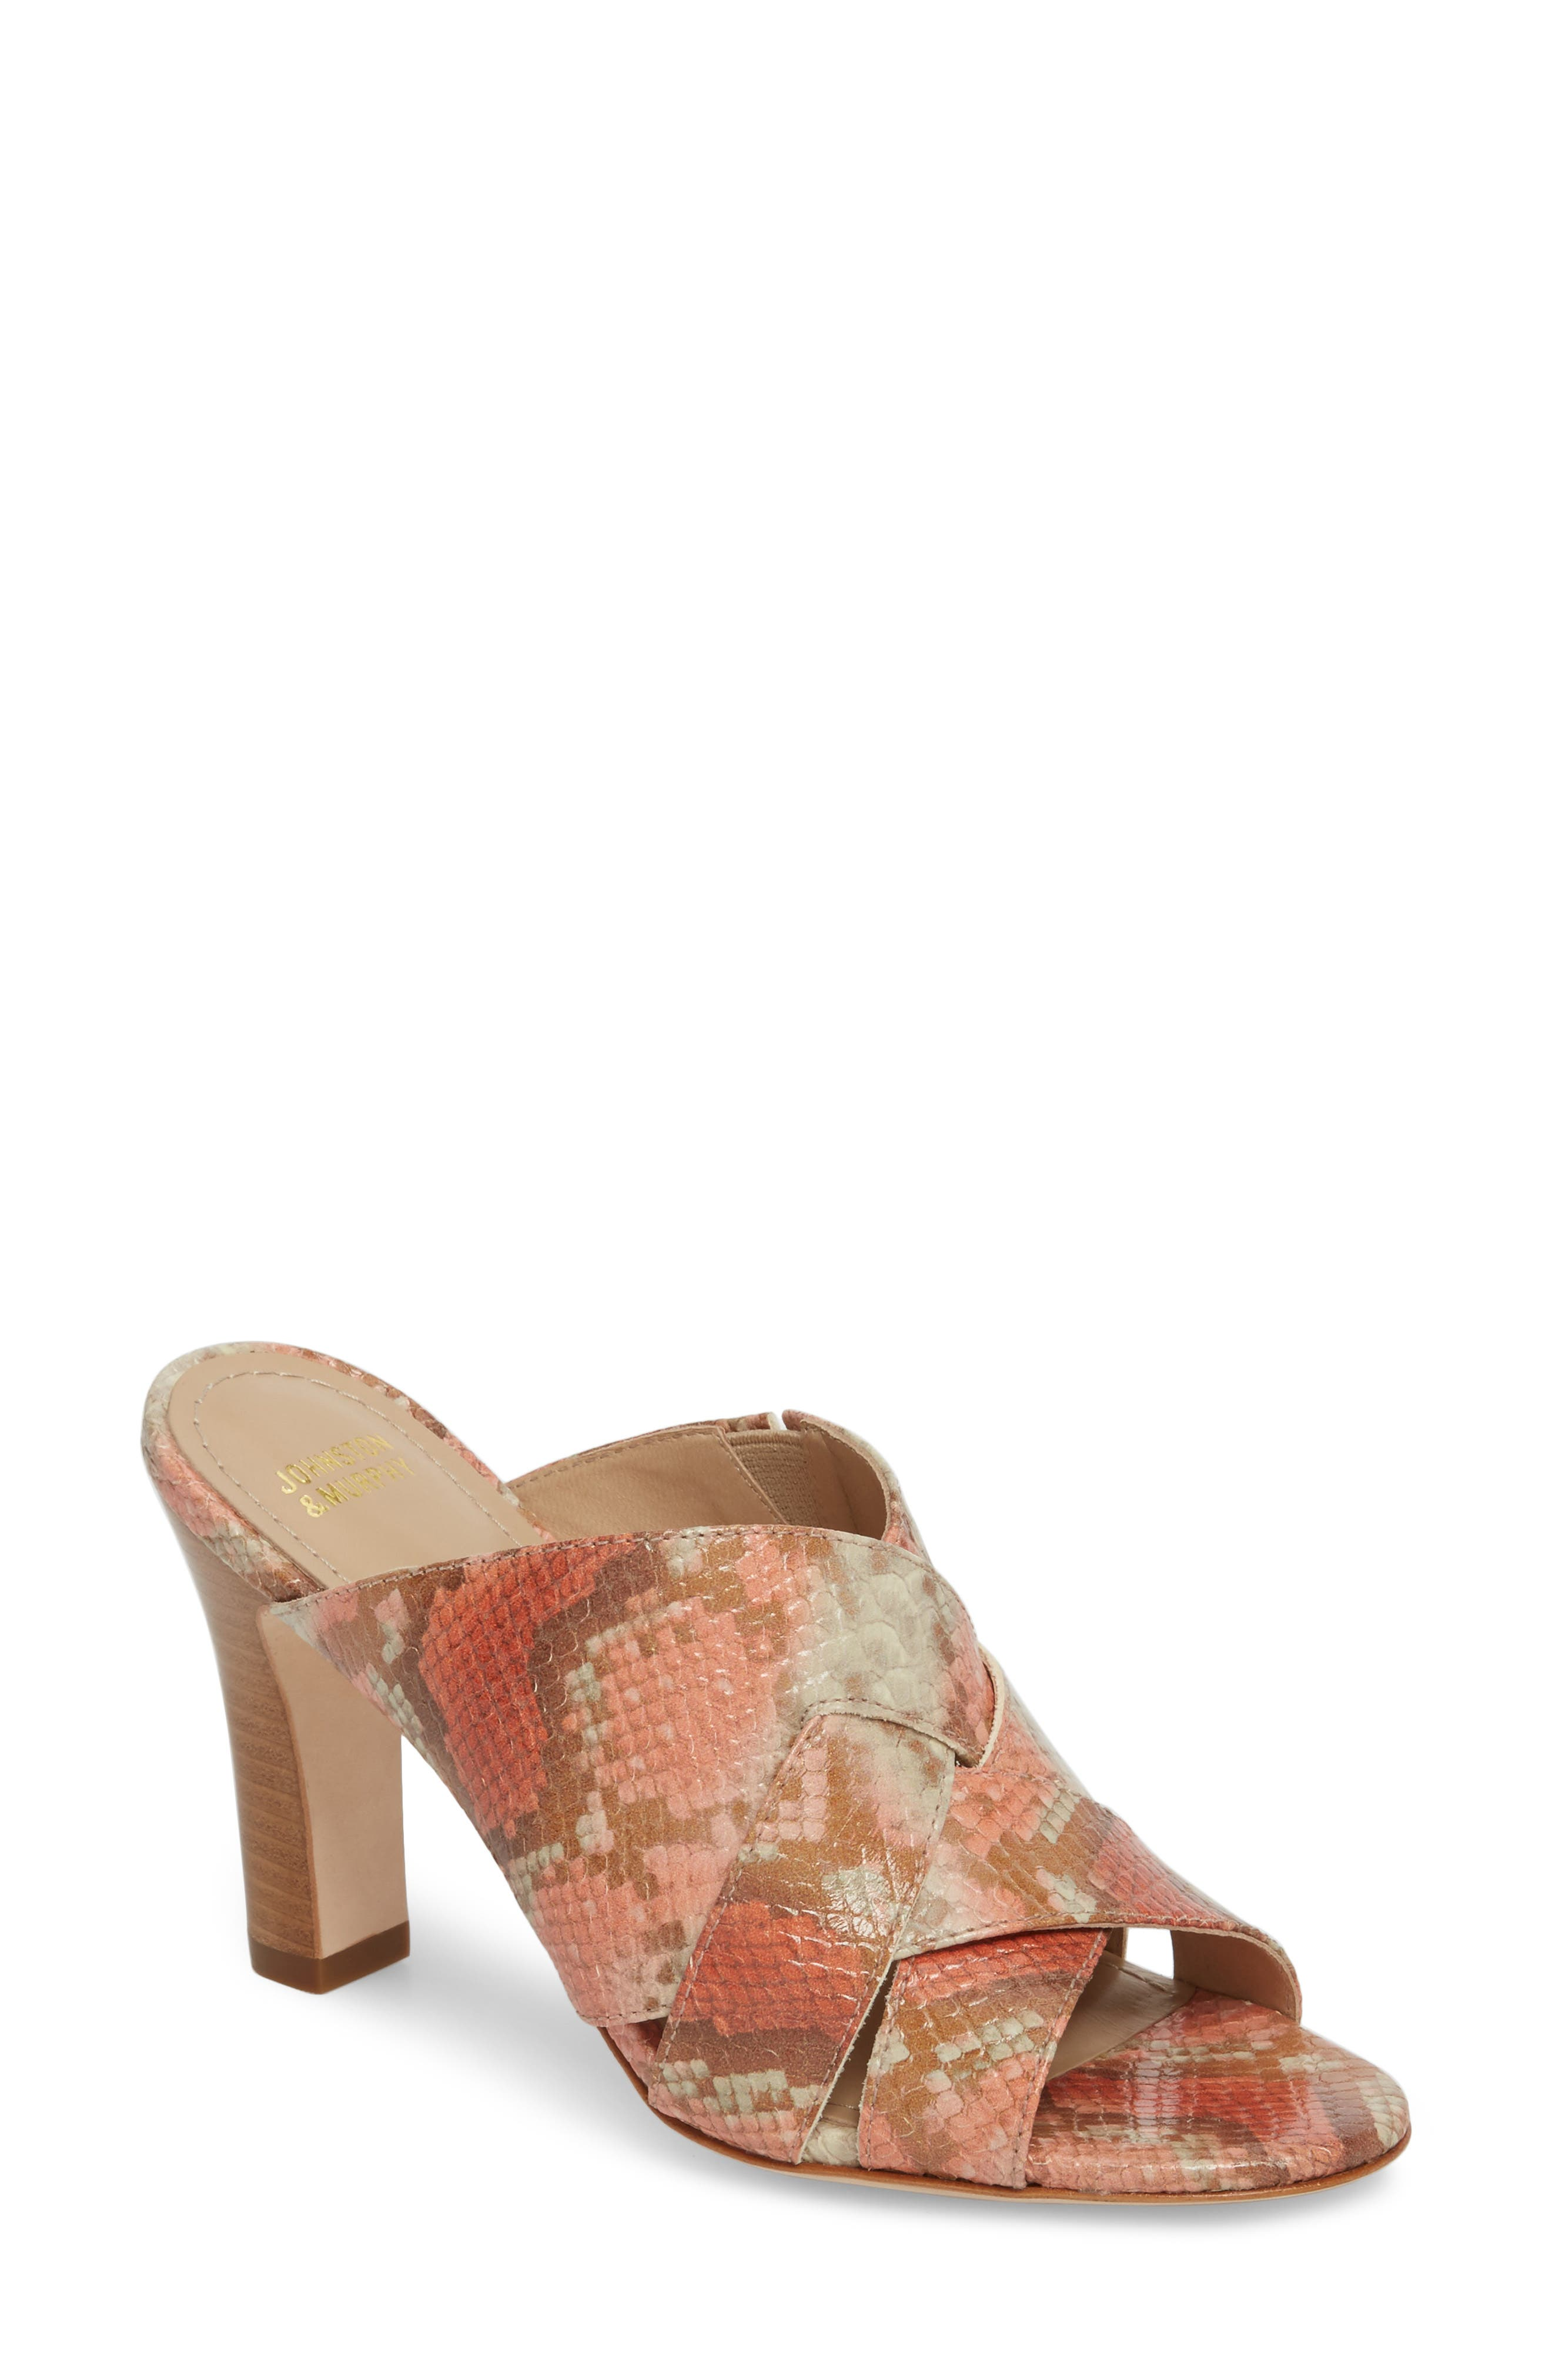 Carrie Mule Sandal,                         Main,                         color, Coral Leather